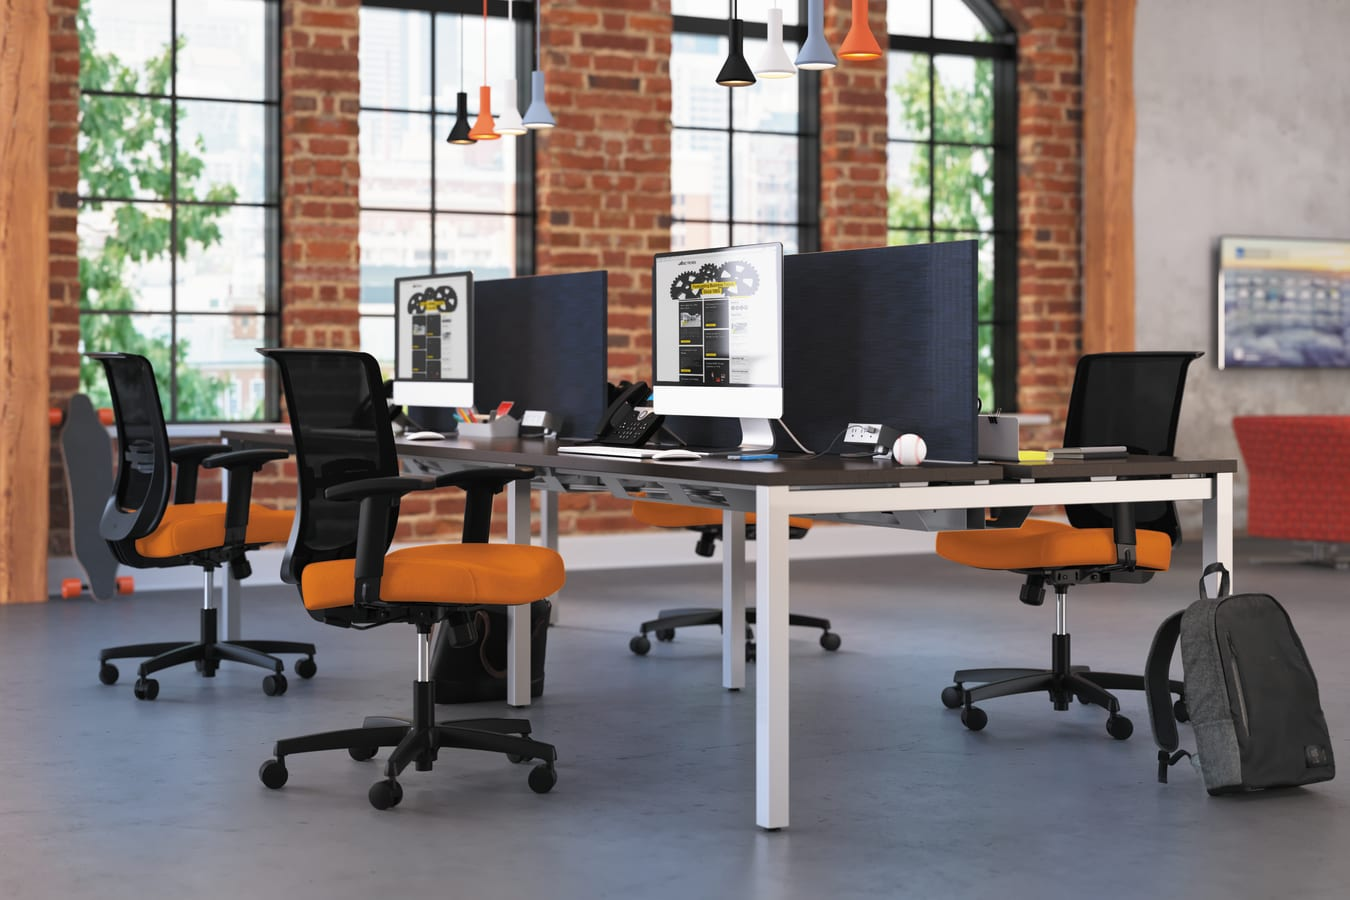 HON/Chairs/Convergence/HON-Convergence-Empower-500-002